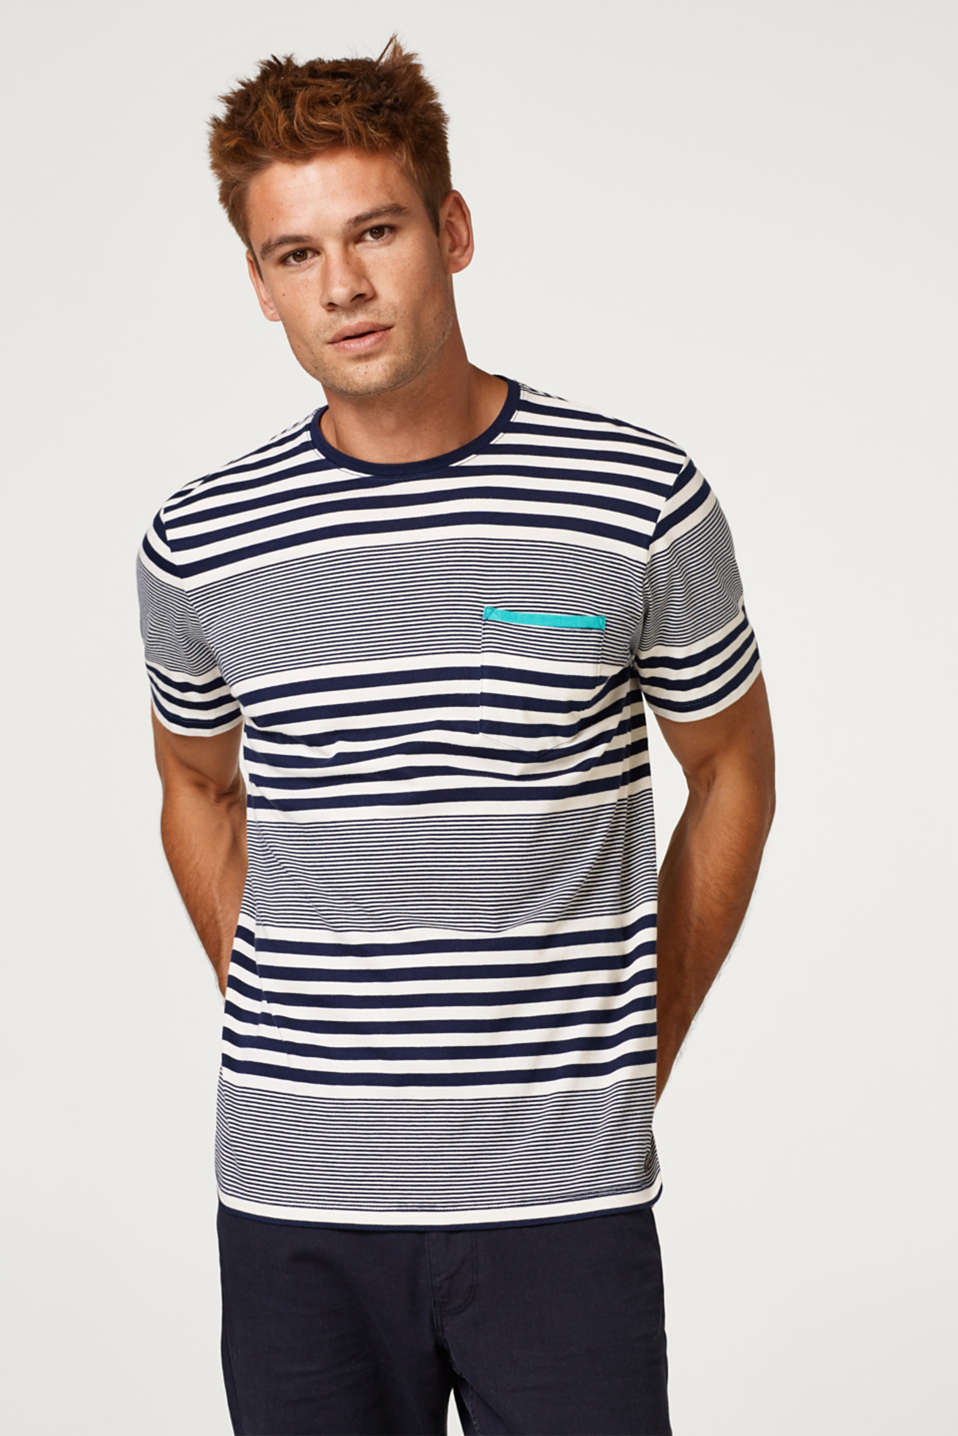 Esprit - Jersey T-shirt with stripes, 100% cotton